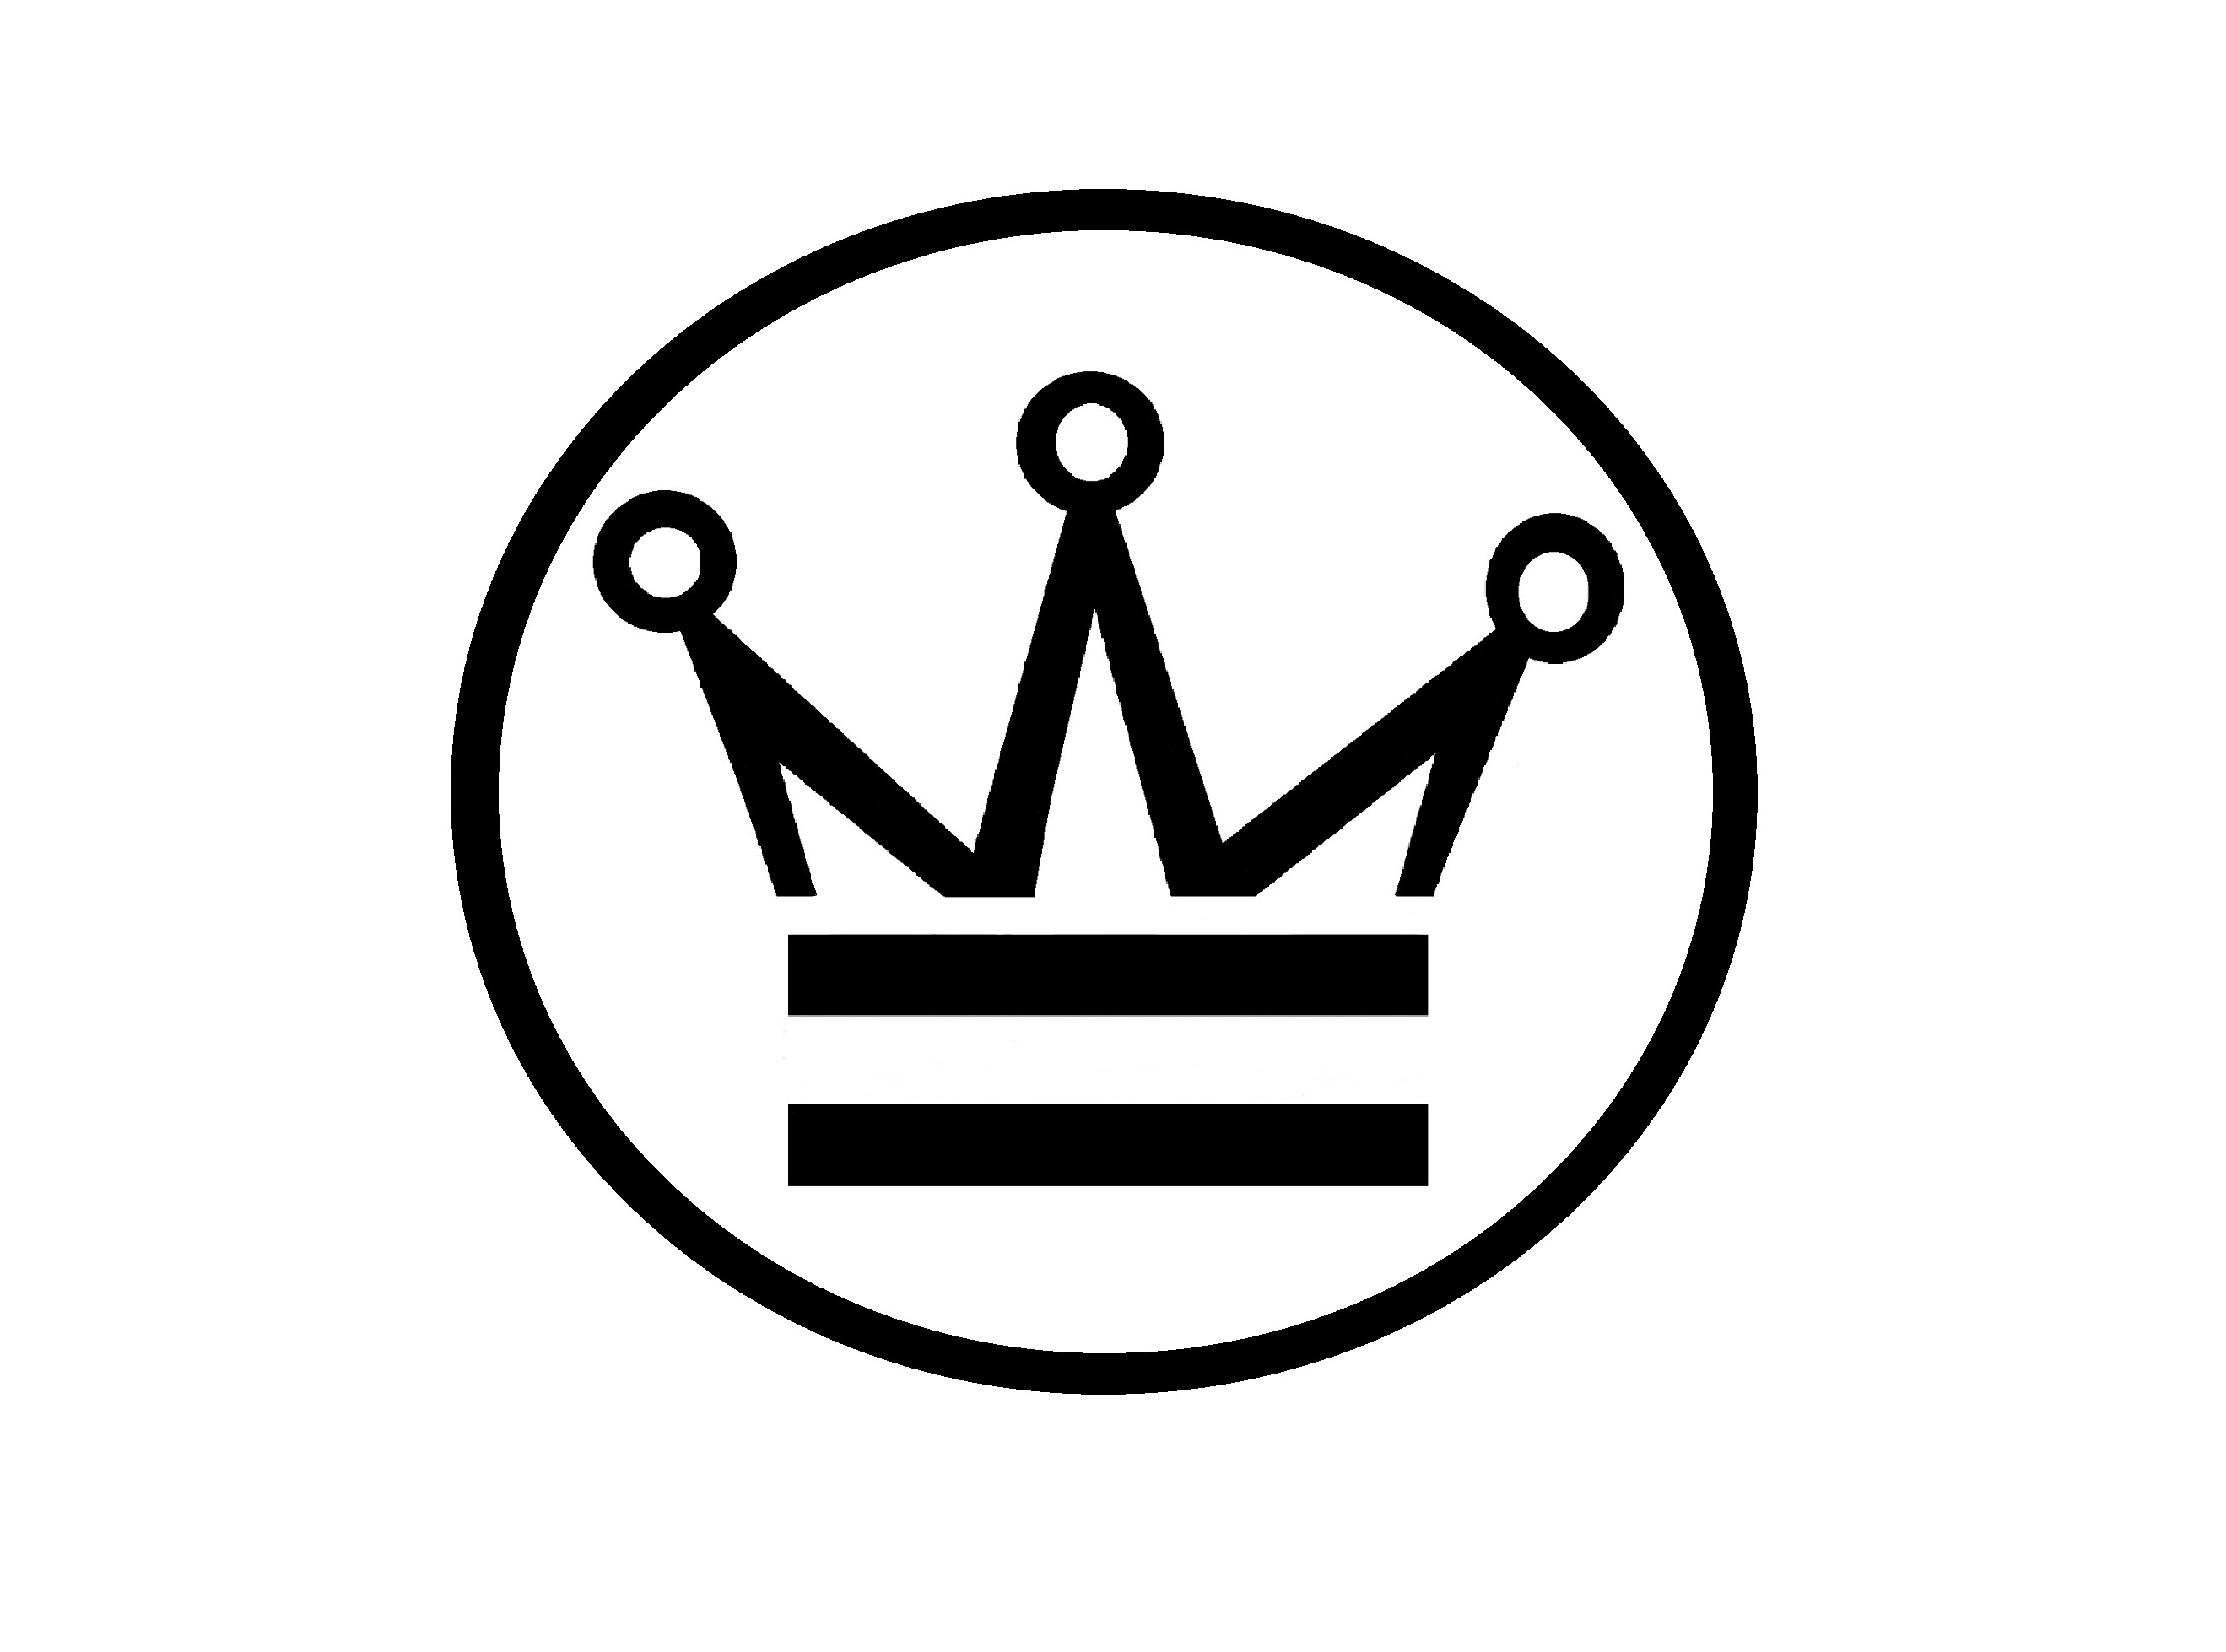 KOTM CROWN NEW 7_2017 w NO text w circle